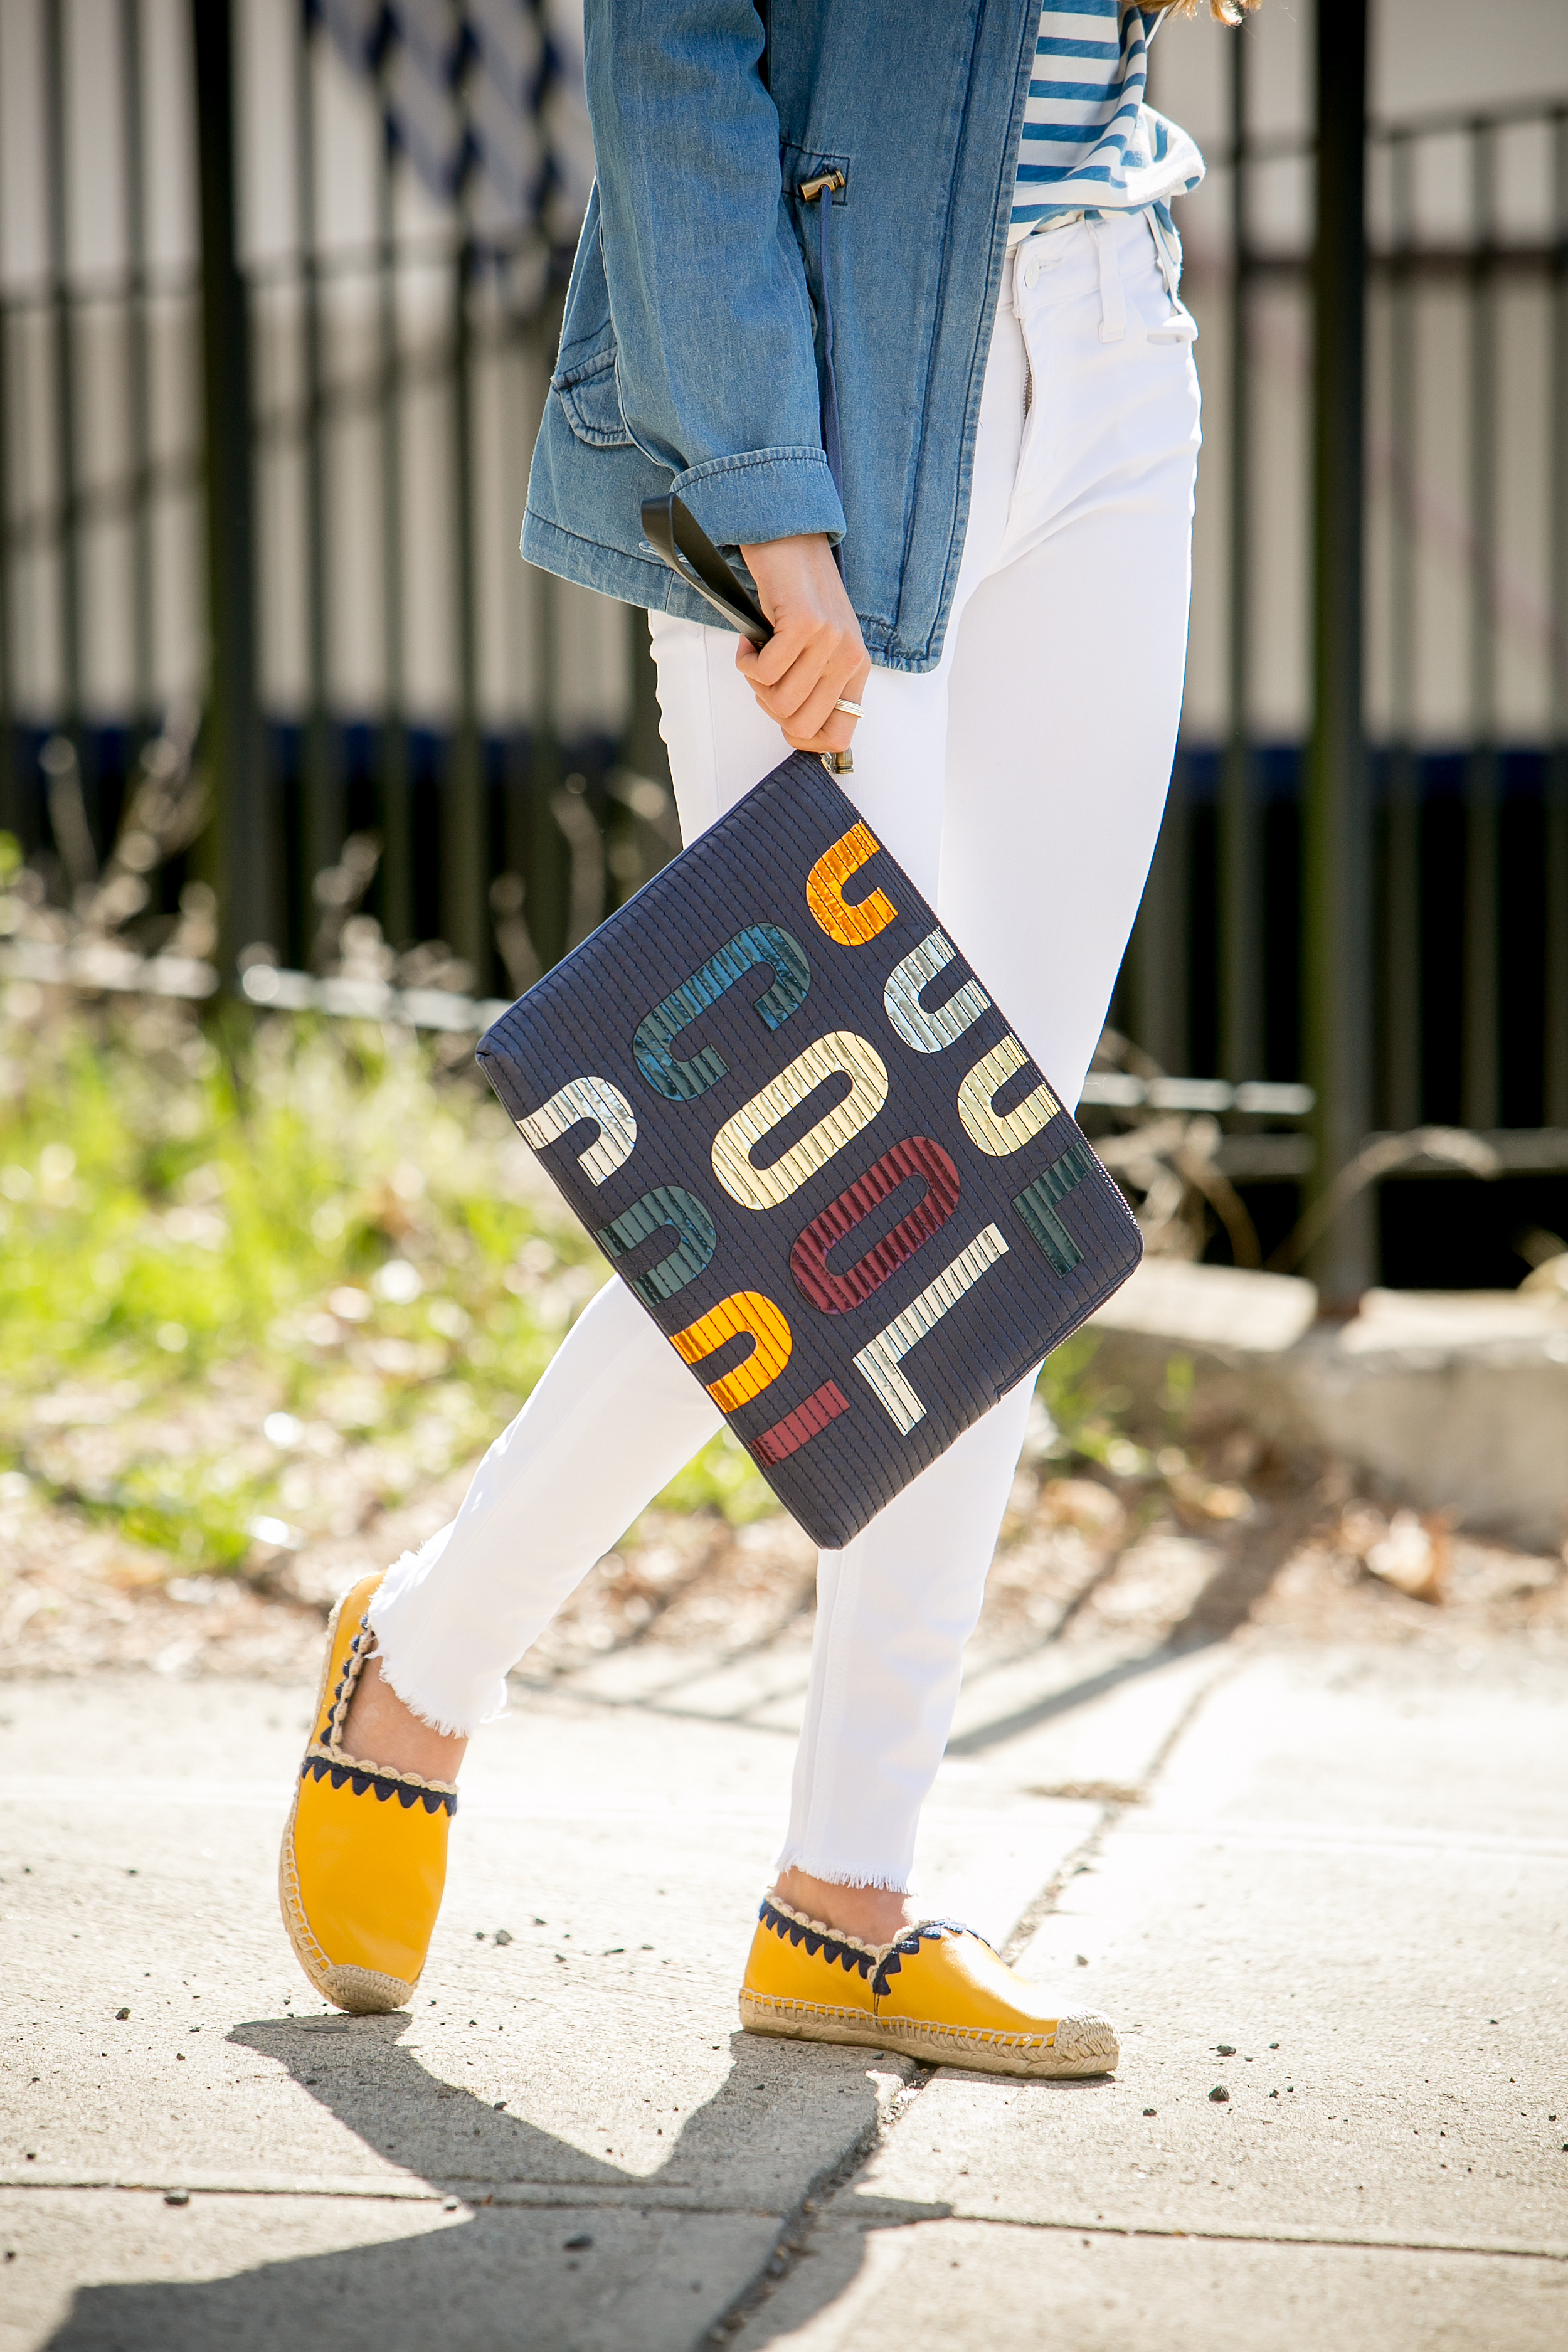 Tee:  JCrew  |Jacket:  Santa Fe Apparel  |Jeans:  Joe's Jeans  |Espadrilles:  Tory Burch  |Clutch:Lanvin ( sold out )